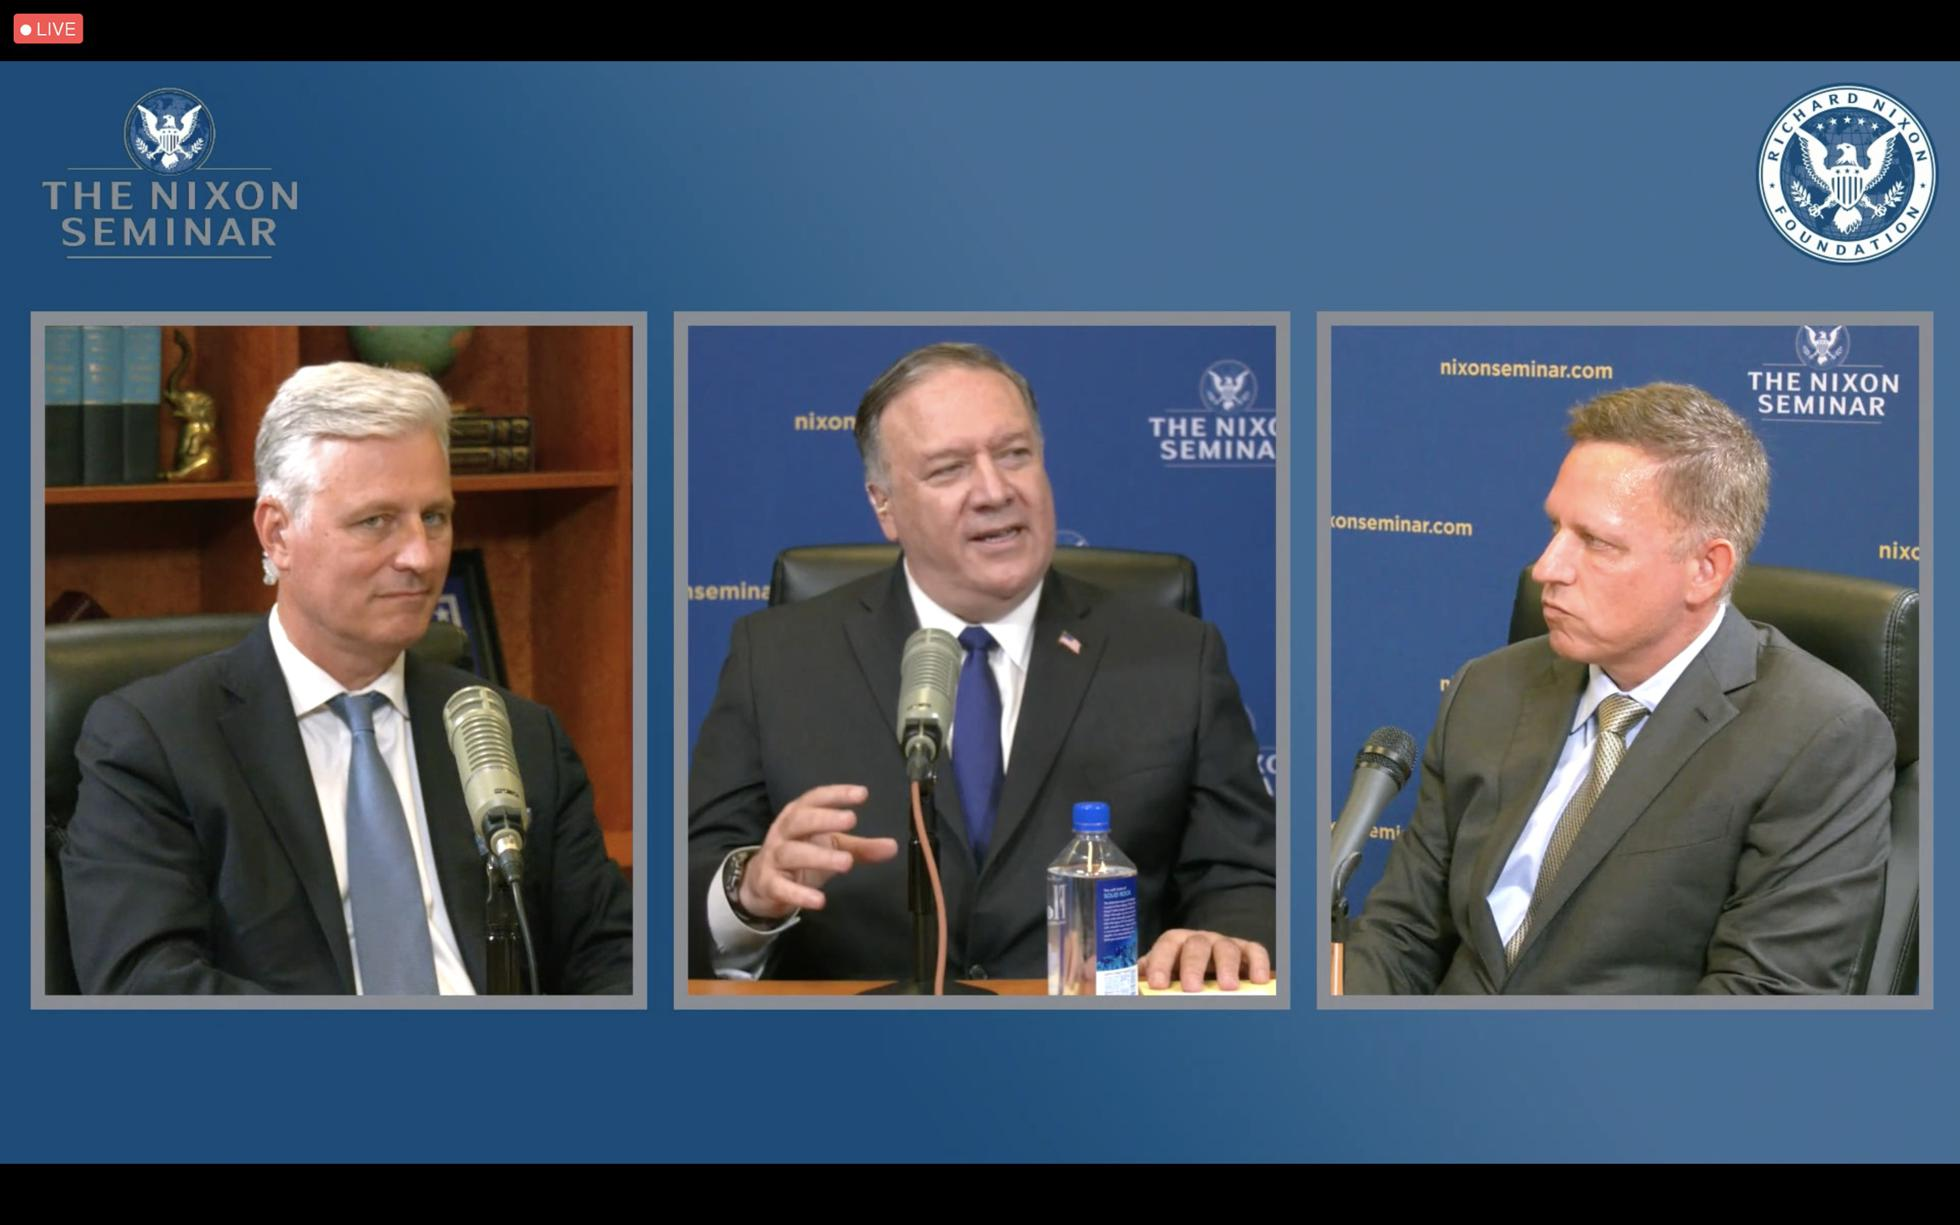 Robert C. O'Brien, Mike Pompeo and Peter Thiel.